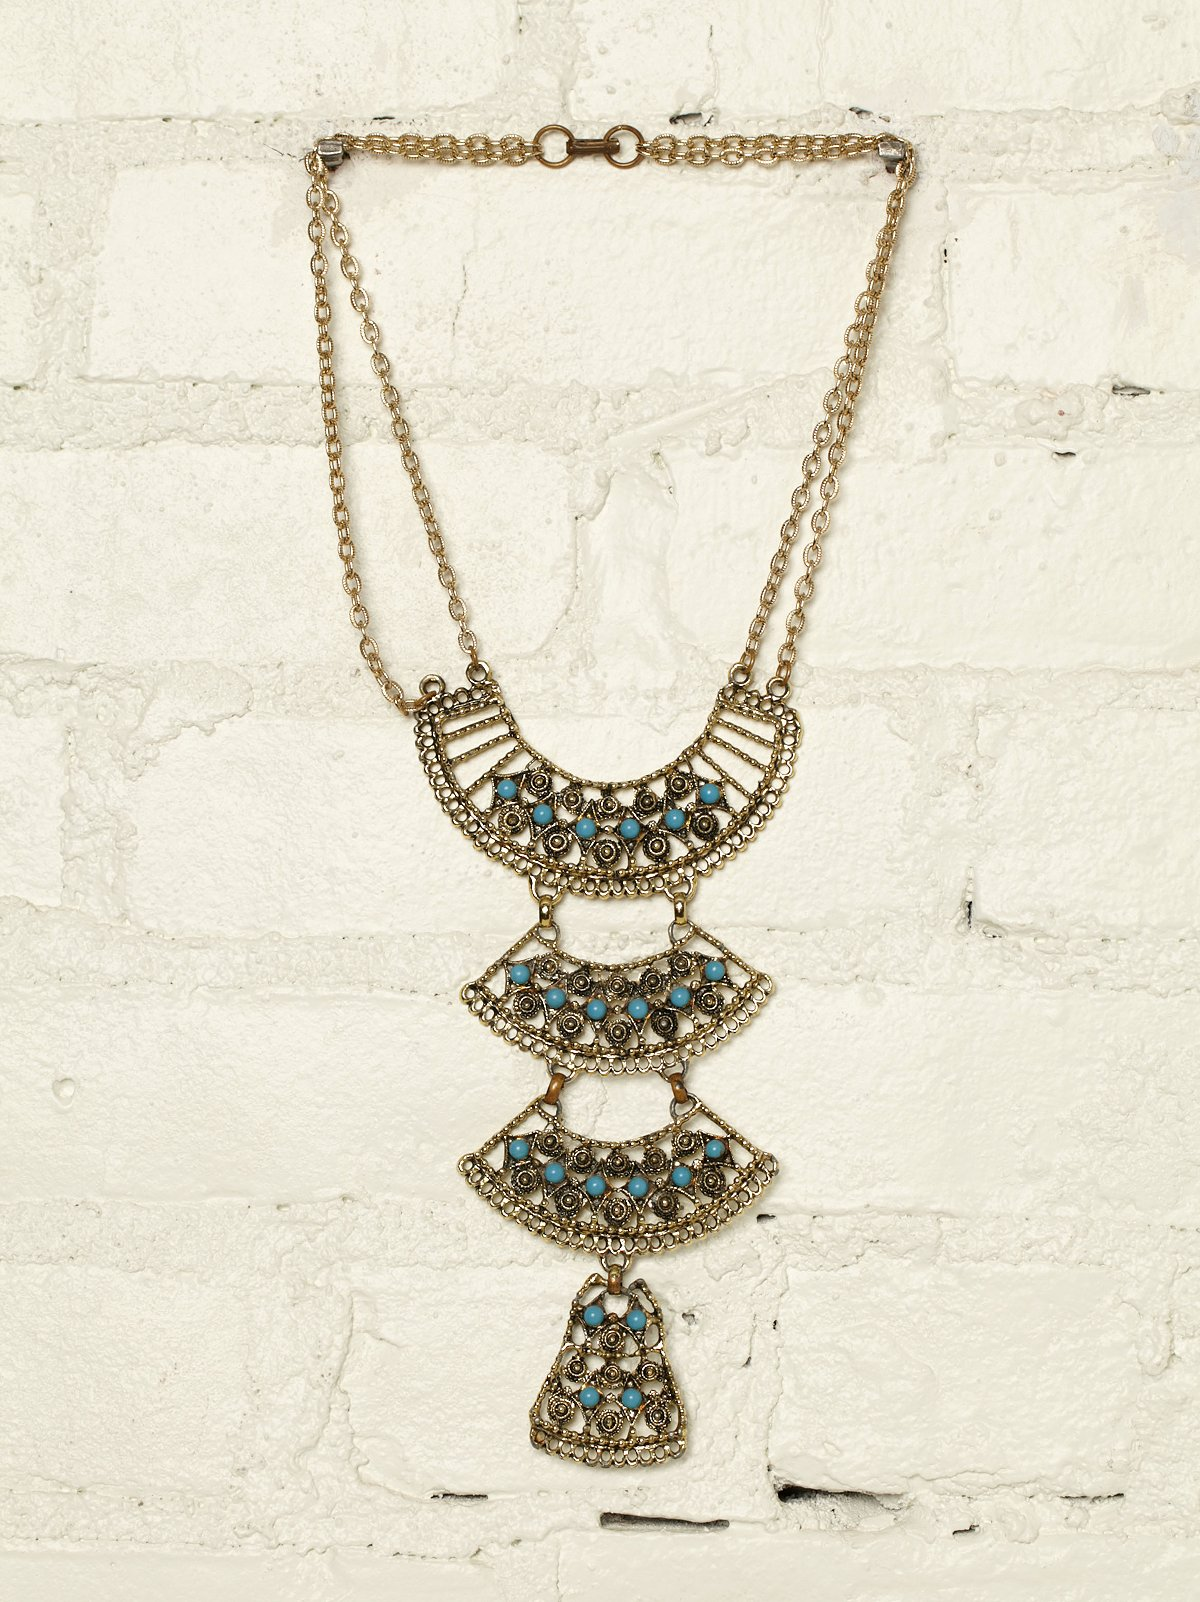 Vintage Tiered Necklace